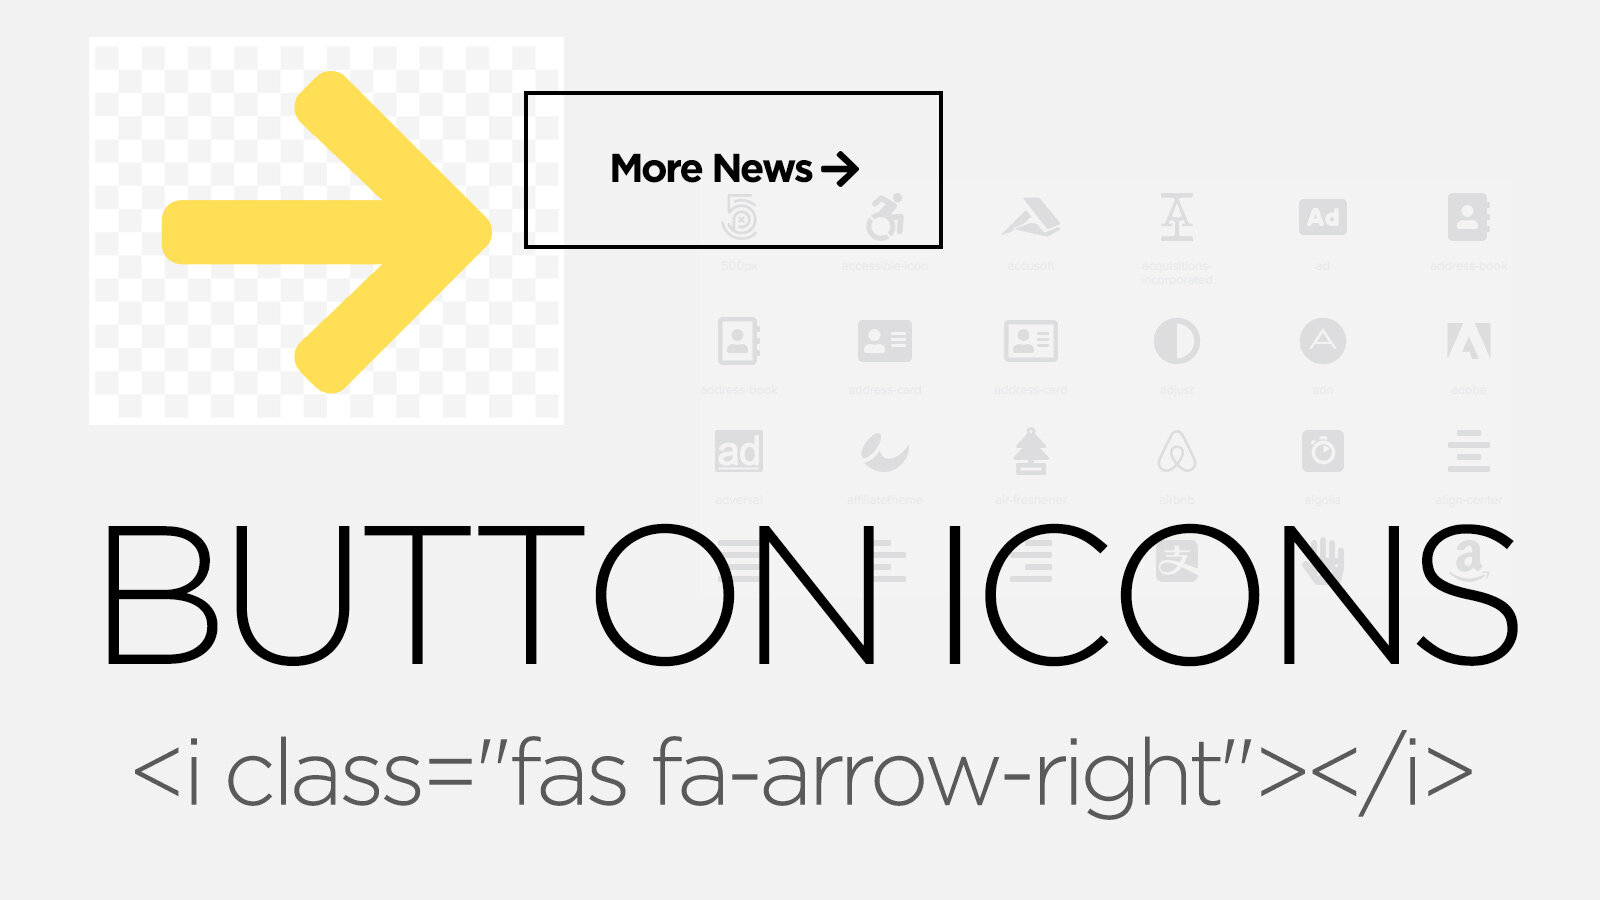 font-awesome icons